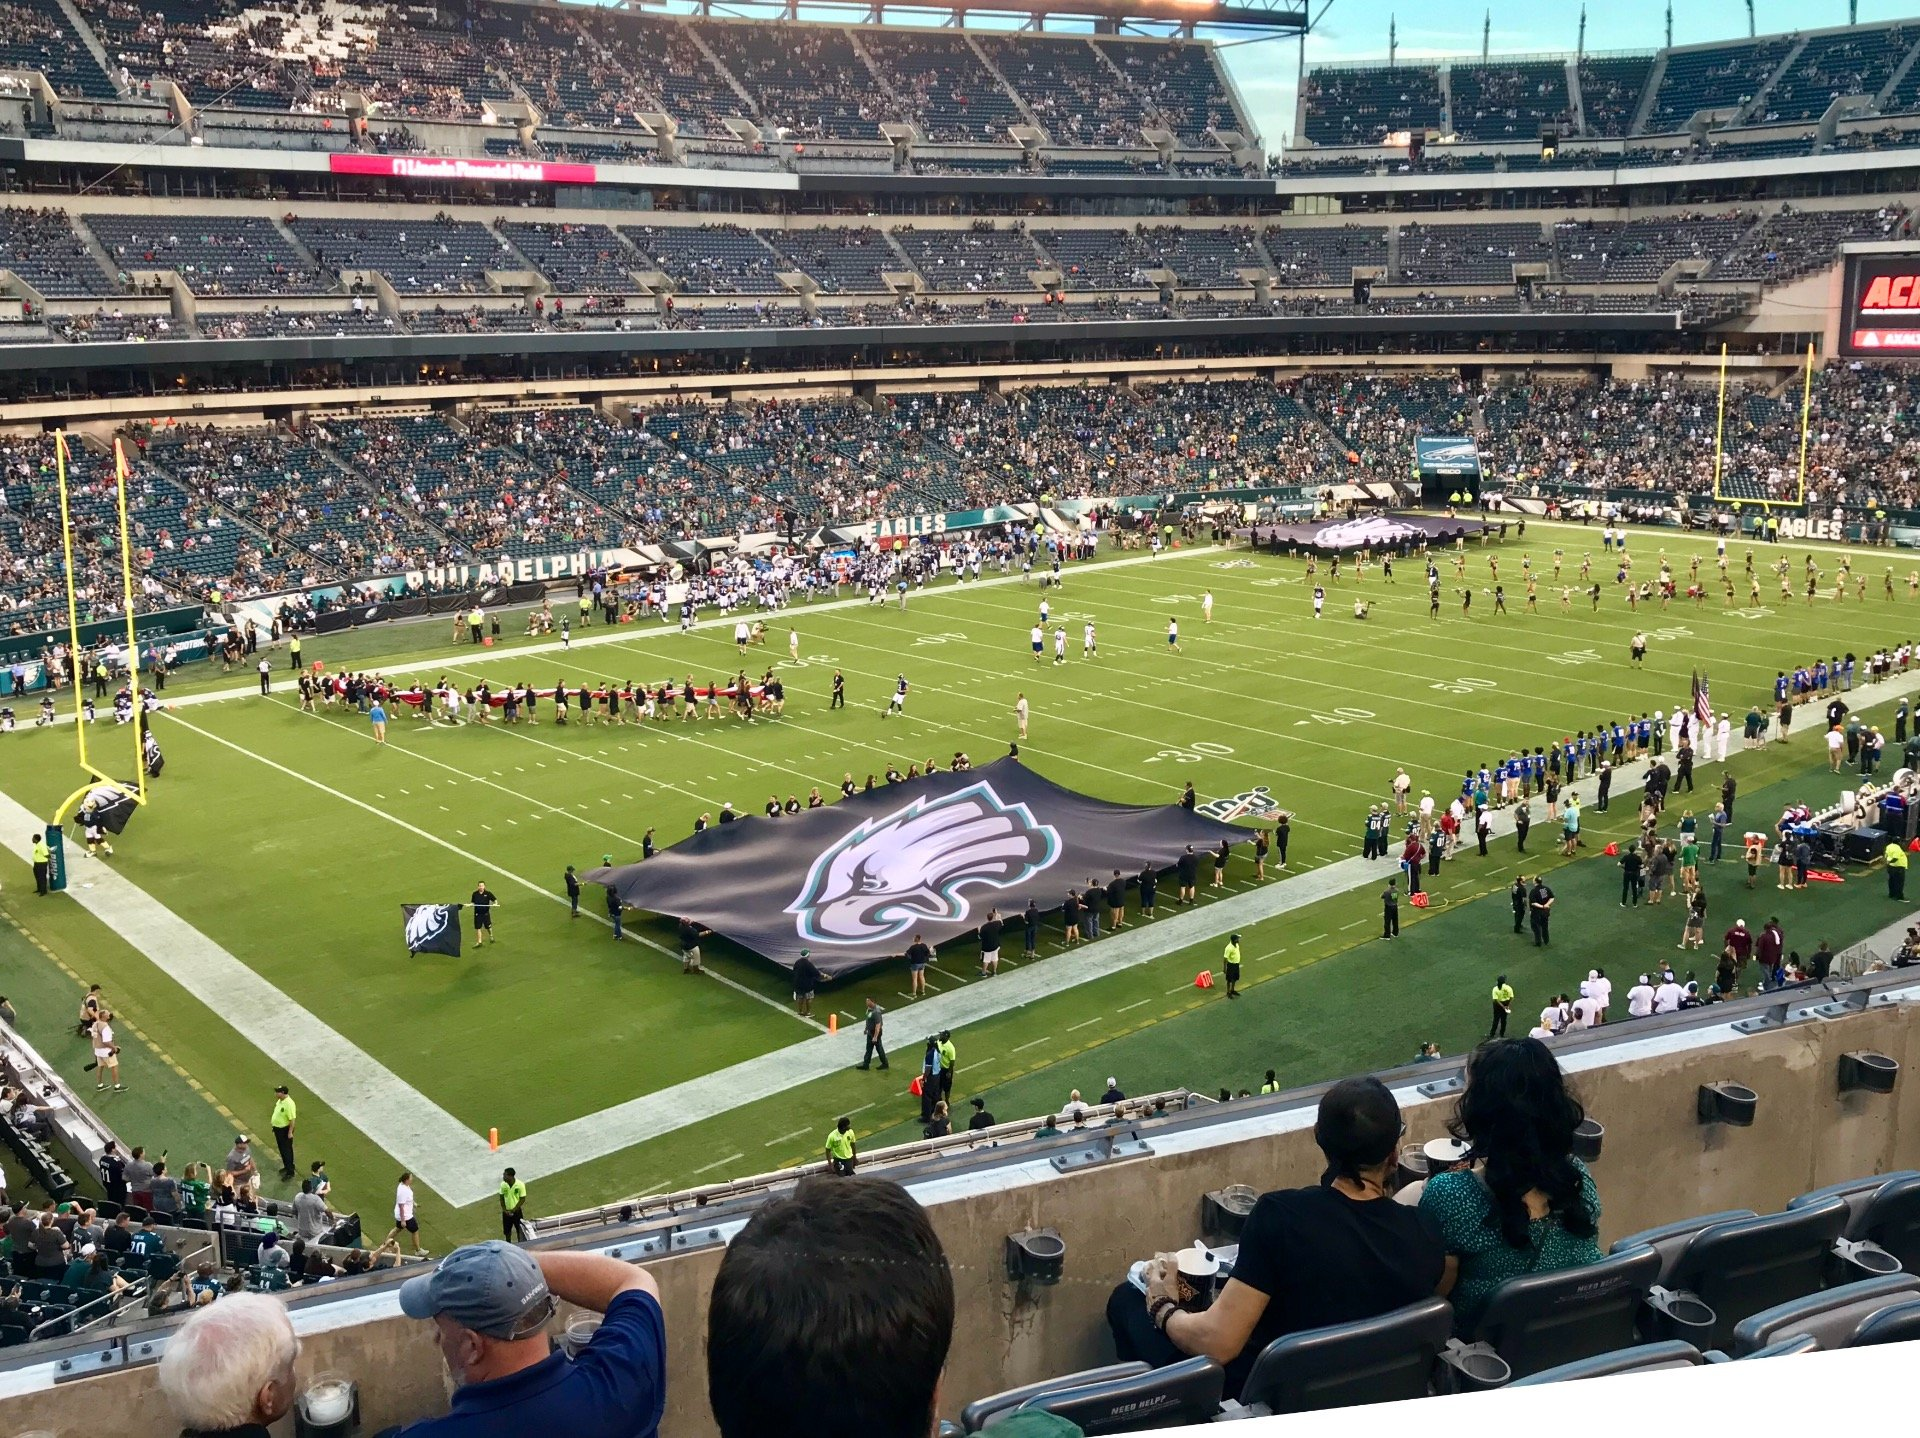 Lincoln Financial Field Section C35 Row 5 Seat 15